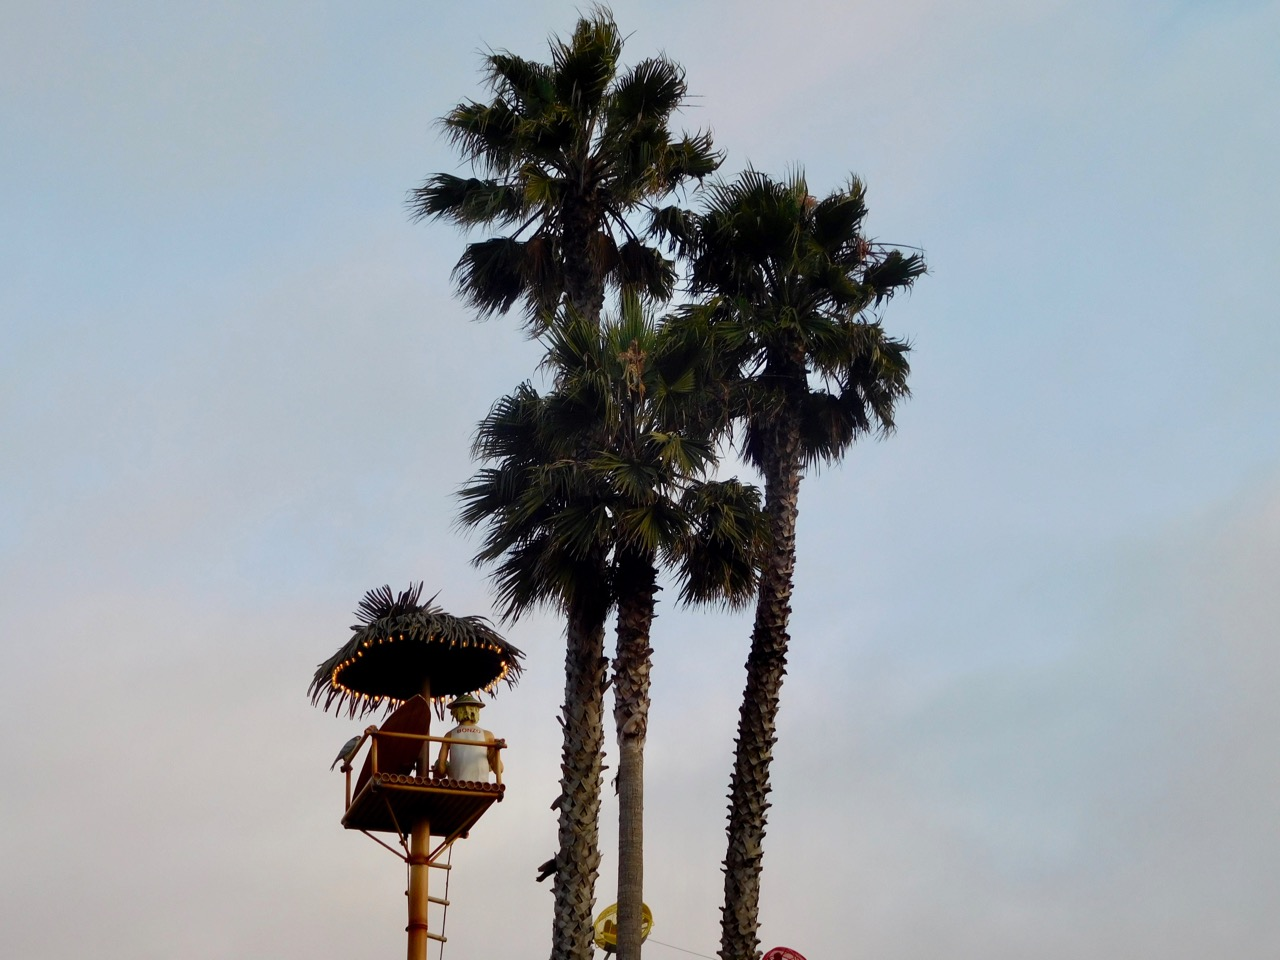 A few days in Santa Cruz - Palm Trees at Boardwalk Amusement Park [01]